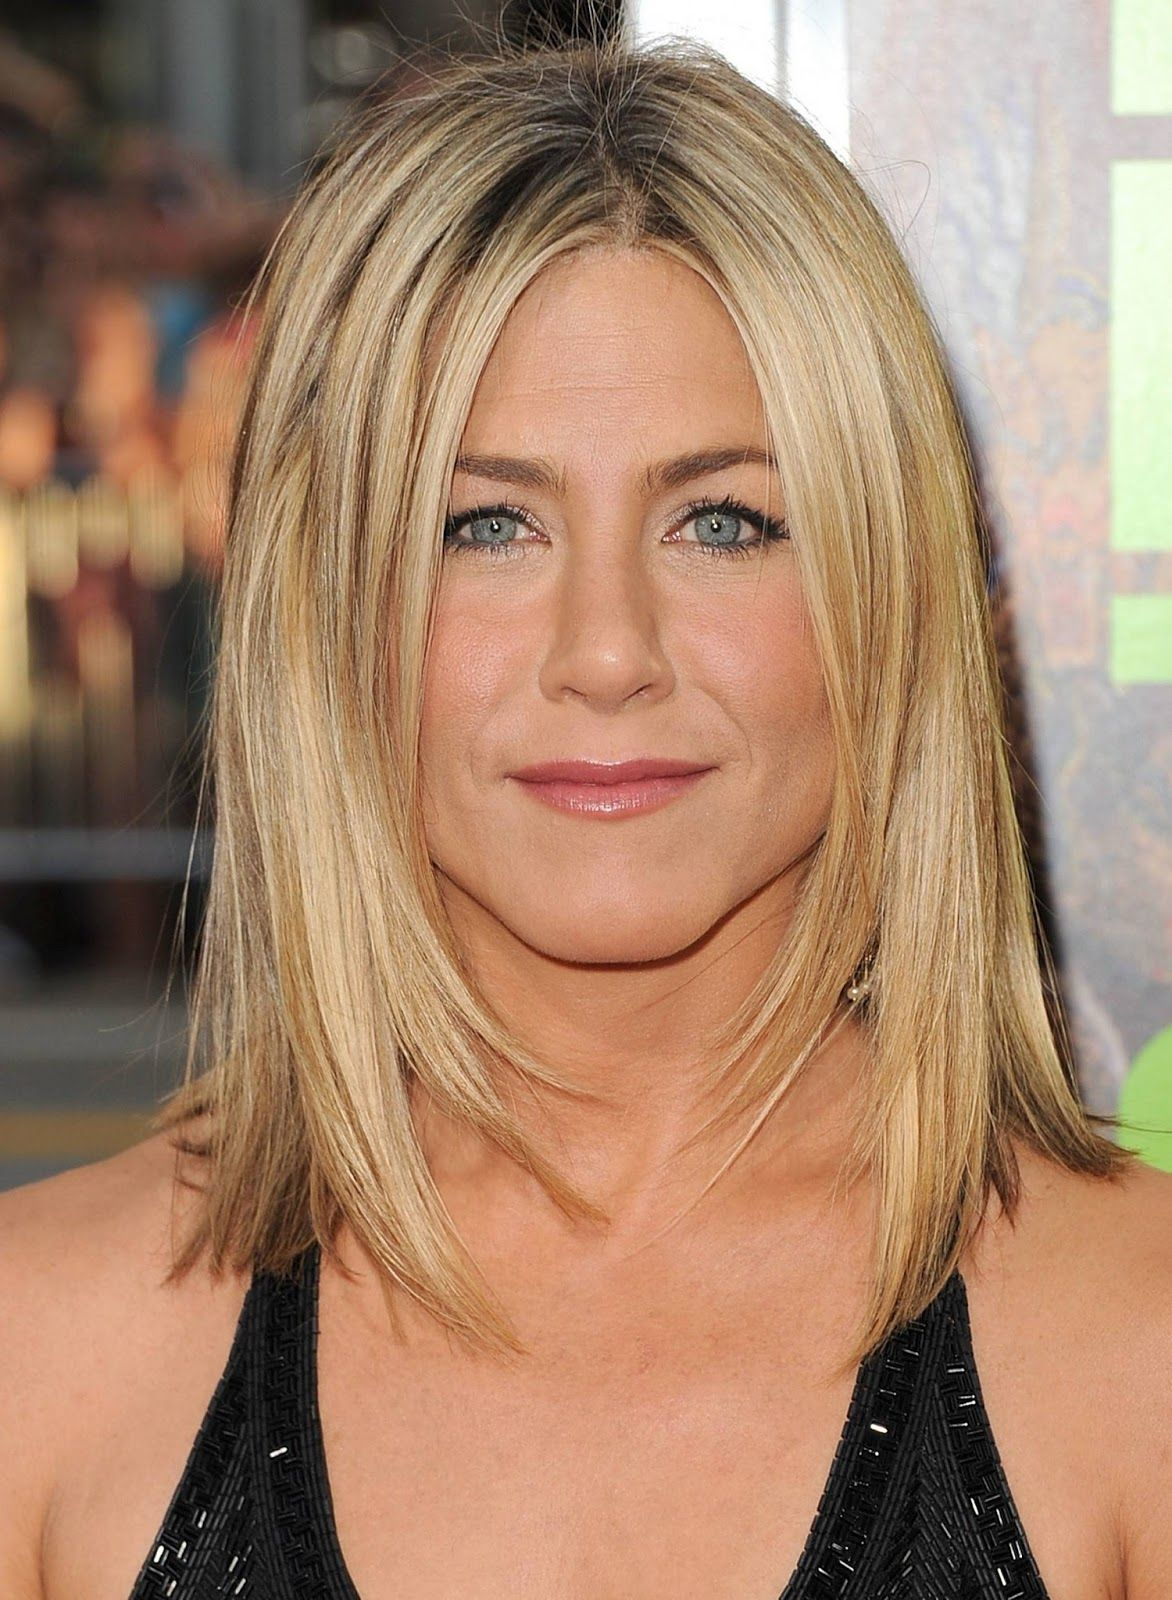 Medium Hairstyles Layers 25 Medium Hairstyles For Girls With Straight Hair Hairstyles For